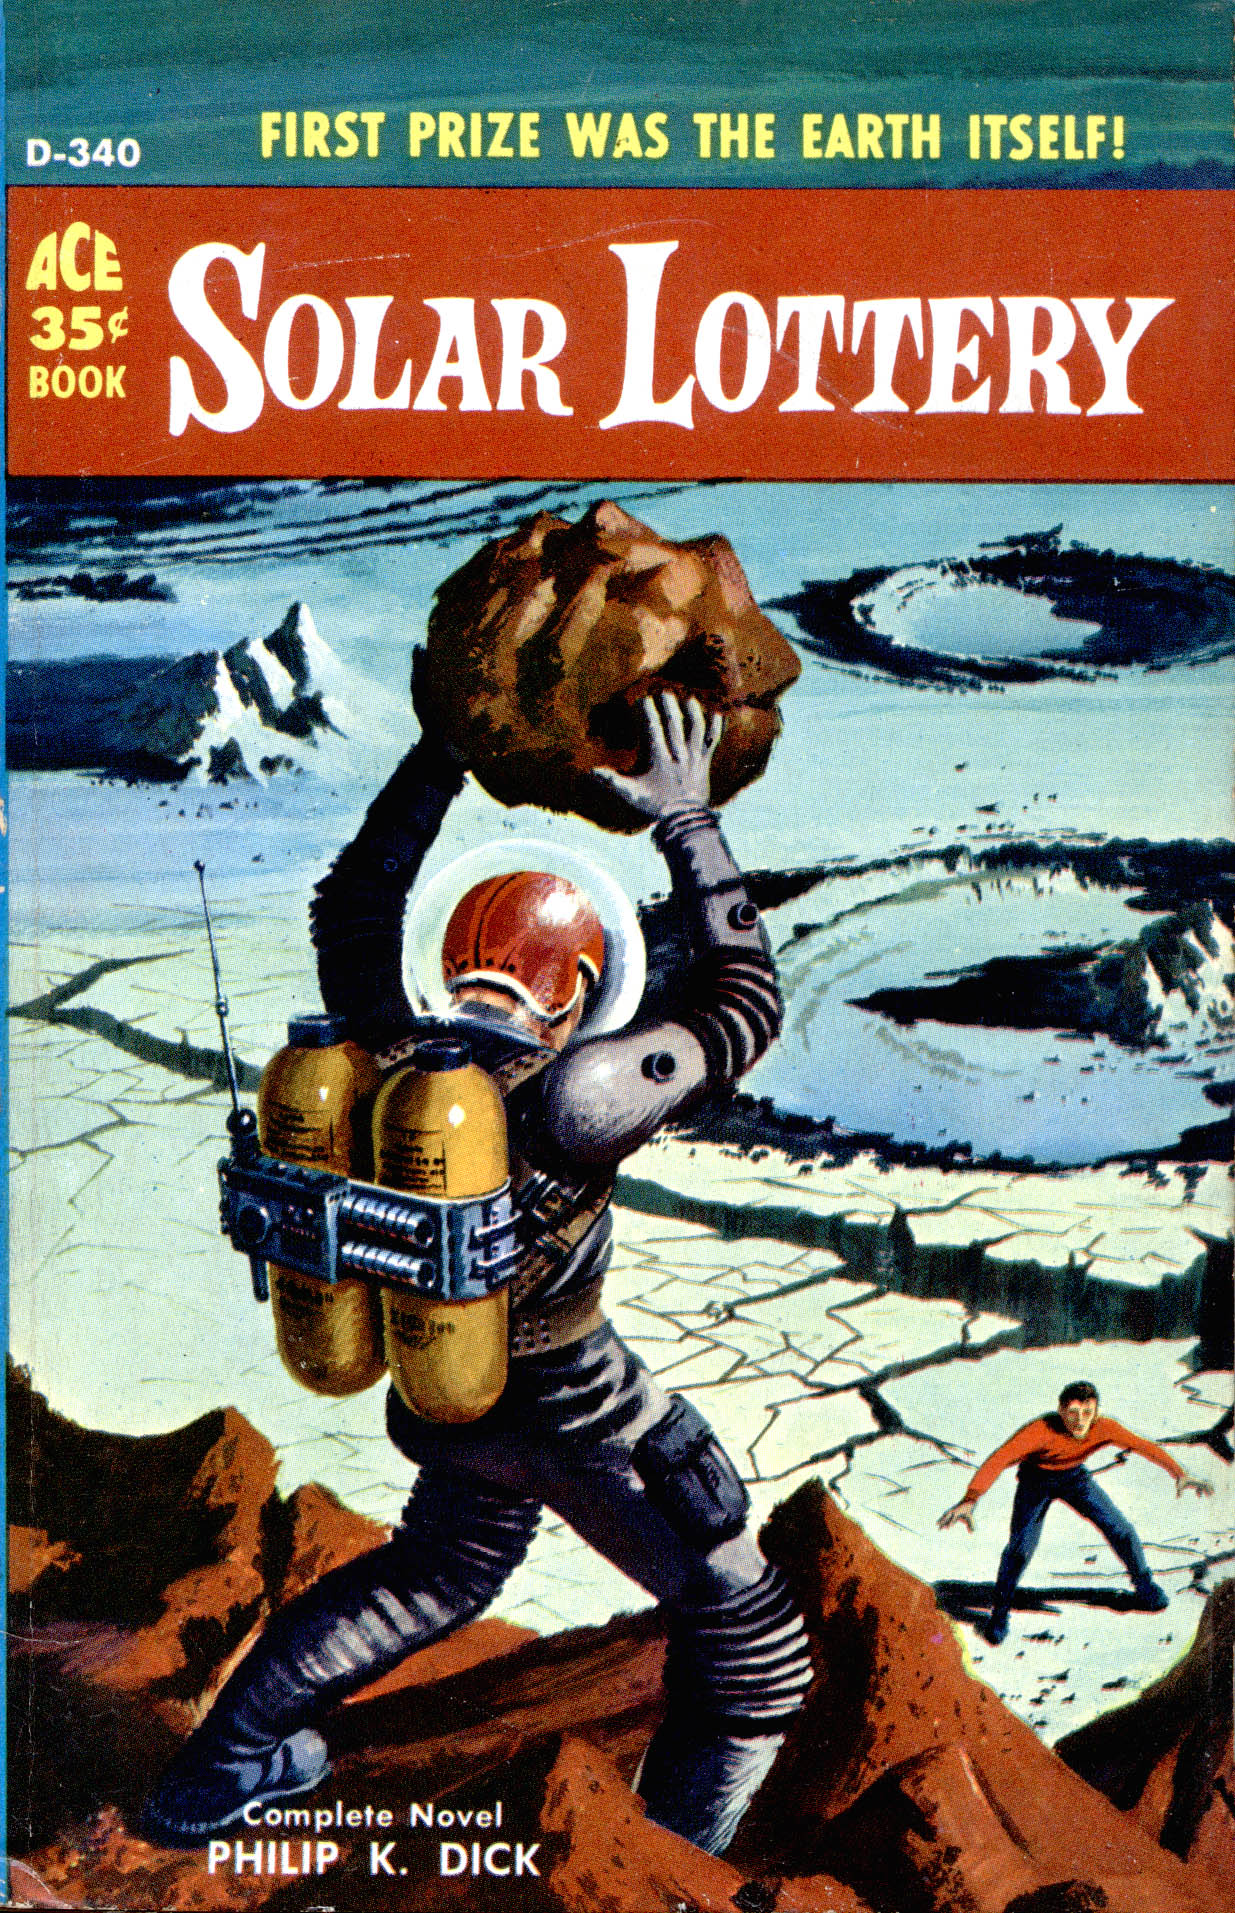 Solar Lottery – Pulp Covers